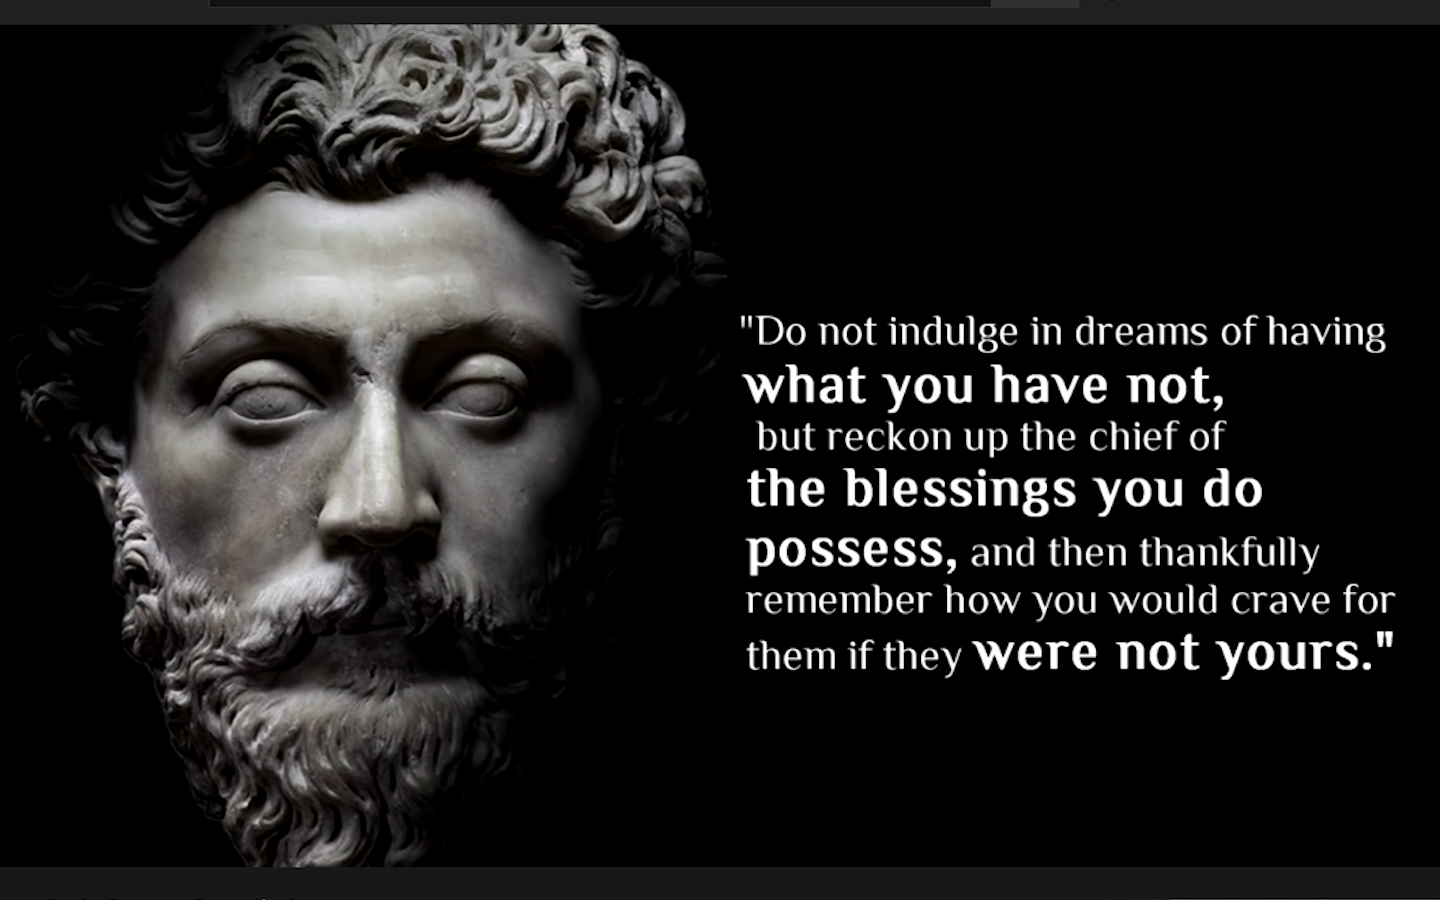 "Marcus Aurelius — ""Do not indulge in dreams of having what you have not, but reckon up the chief of the blessings you do possess, and and then thankfully remember how you would crave for them if they were not yours."" [1440×900]"